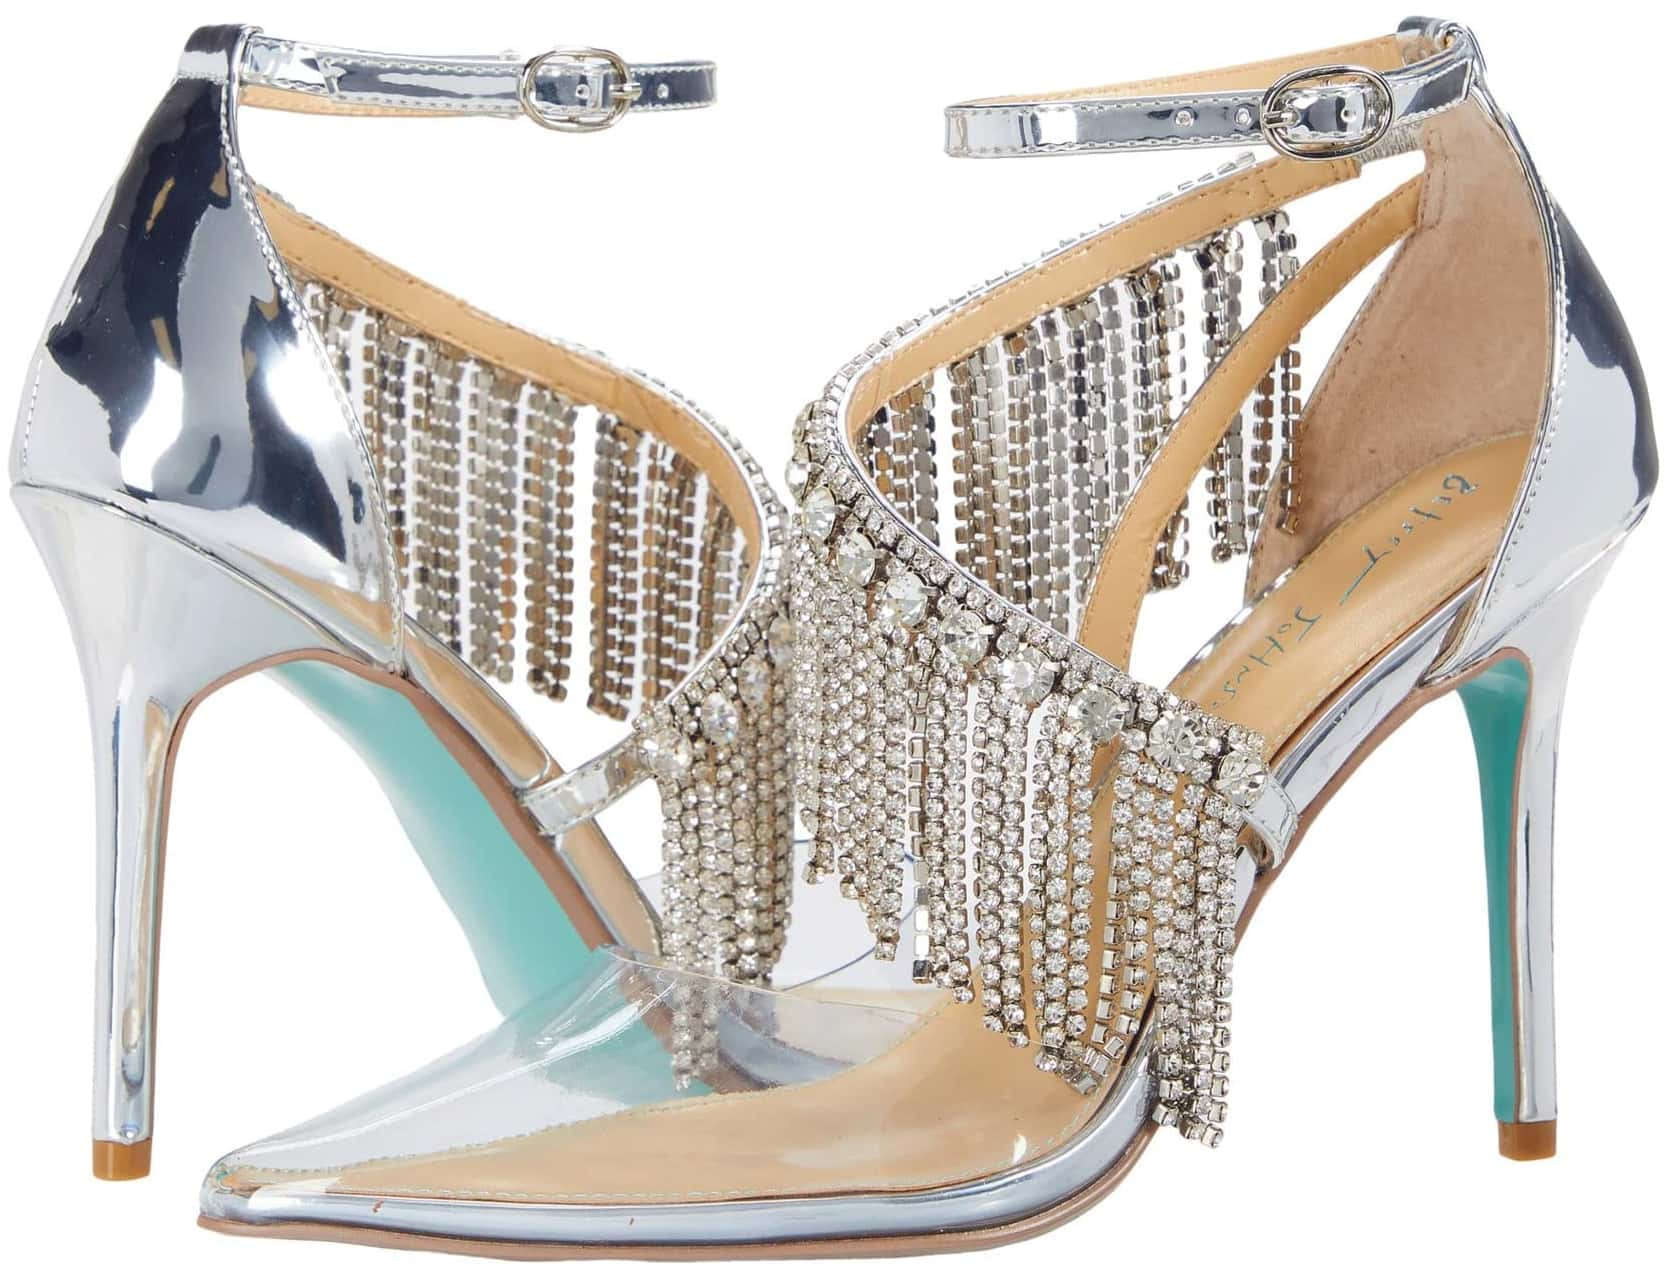 A heavily embellished cascading row of rhinestone fringe adds a dramatic finish to the silver Maze ankle strap pump